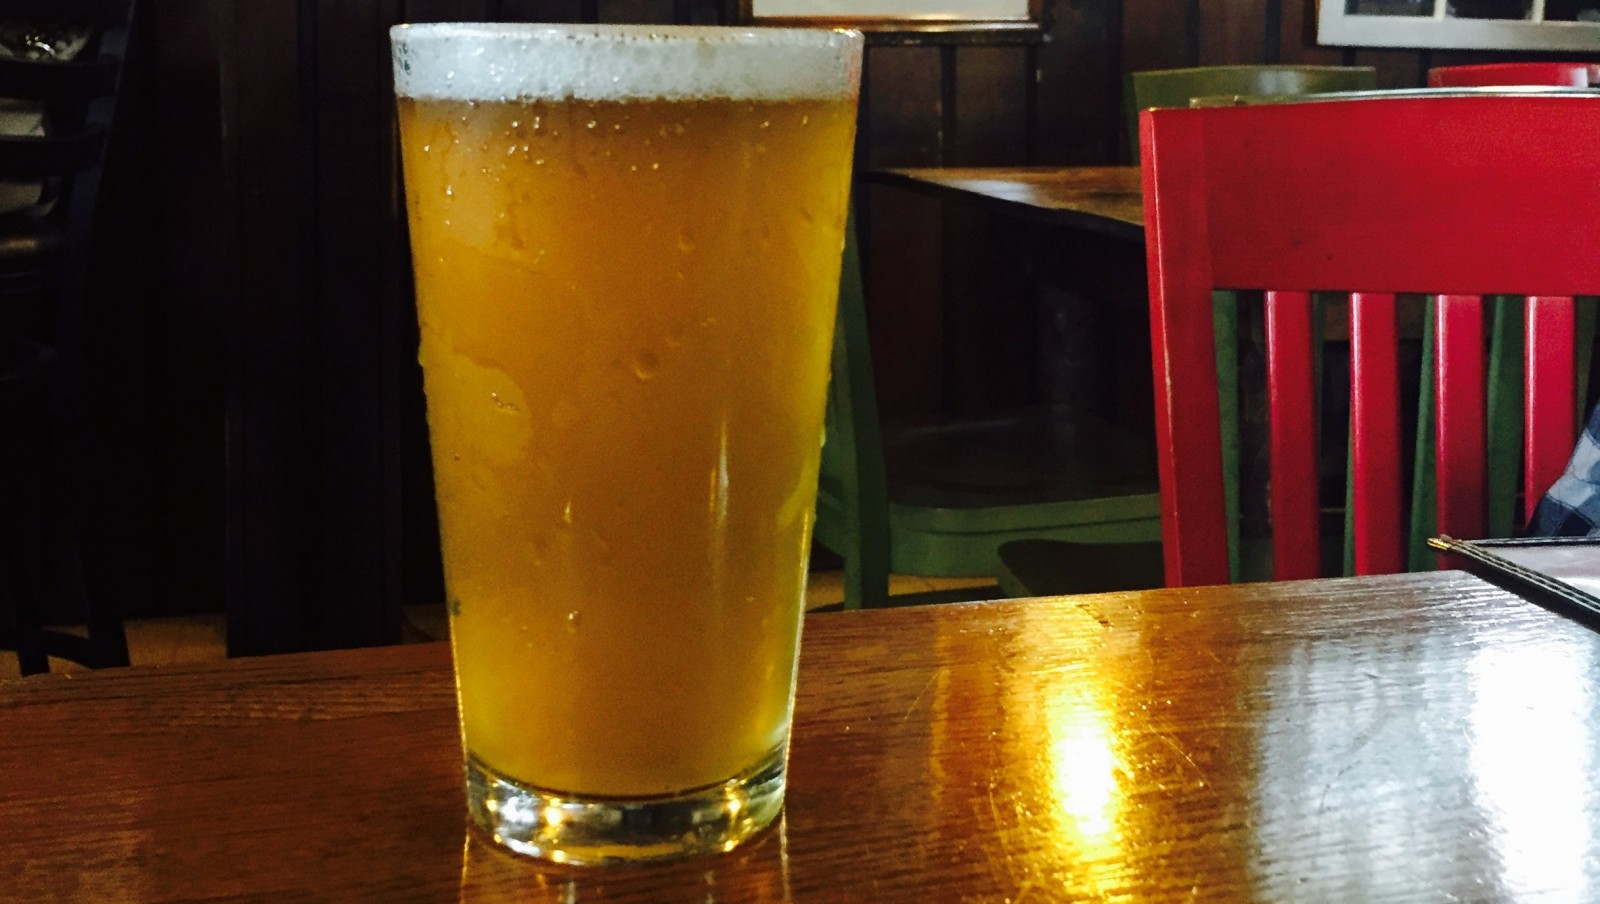 The St. Patrick's Pilsner from Old First Ward Brewing. (Matt Kresconko/Special to the News)